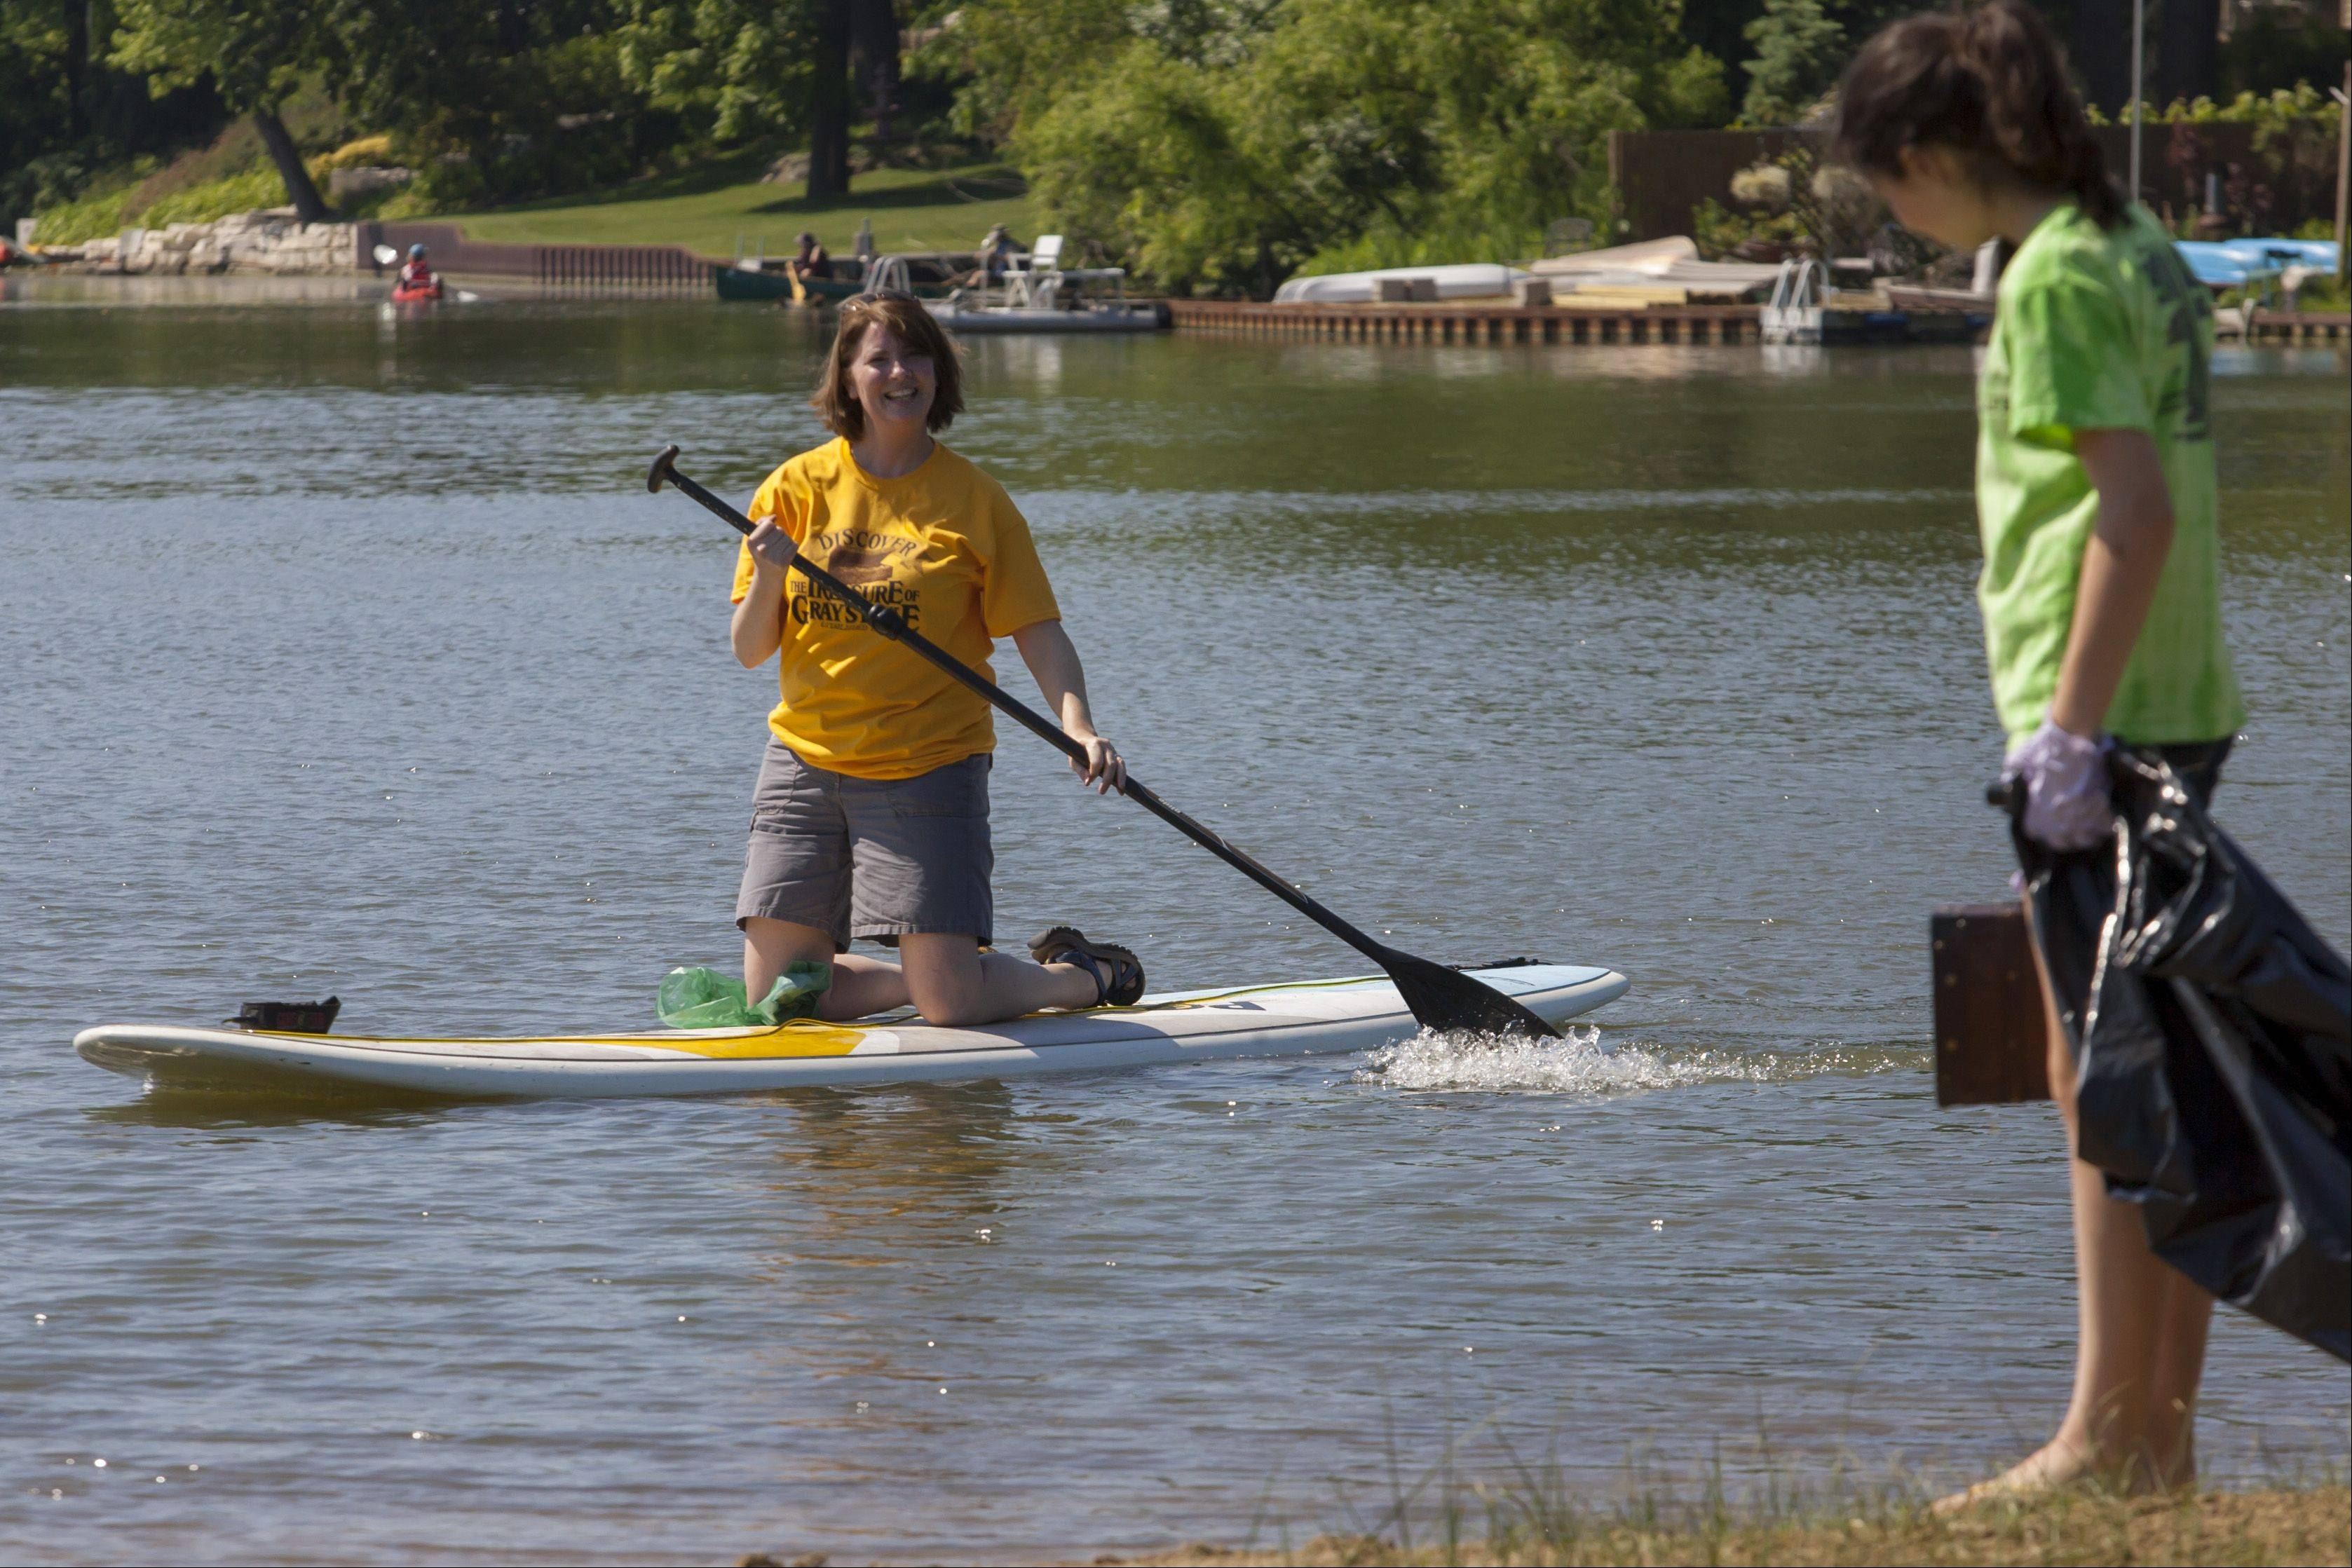 During last year�s Grays Lake shoreline cleanup and treasure hunt, Annie Caliendo lands her paddle board so that her daughter, Hope, can have a turn. Hope found one of five treasure chests hidden around the lake as a prize for helping reduce trash.